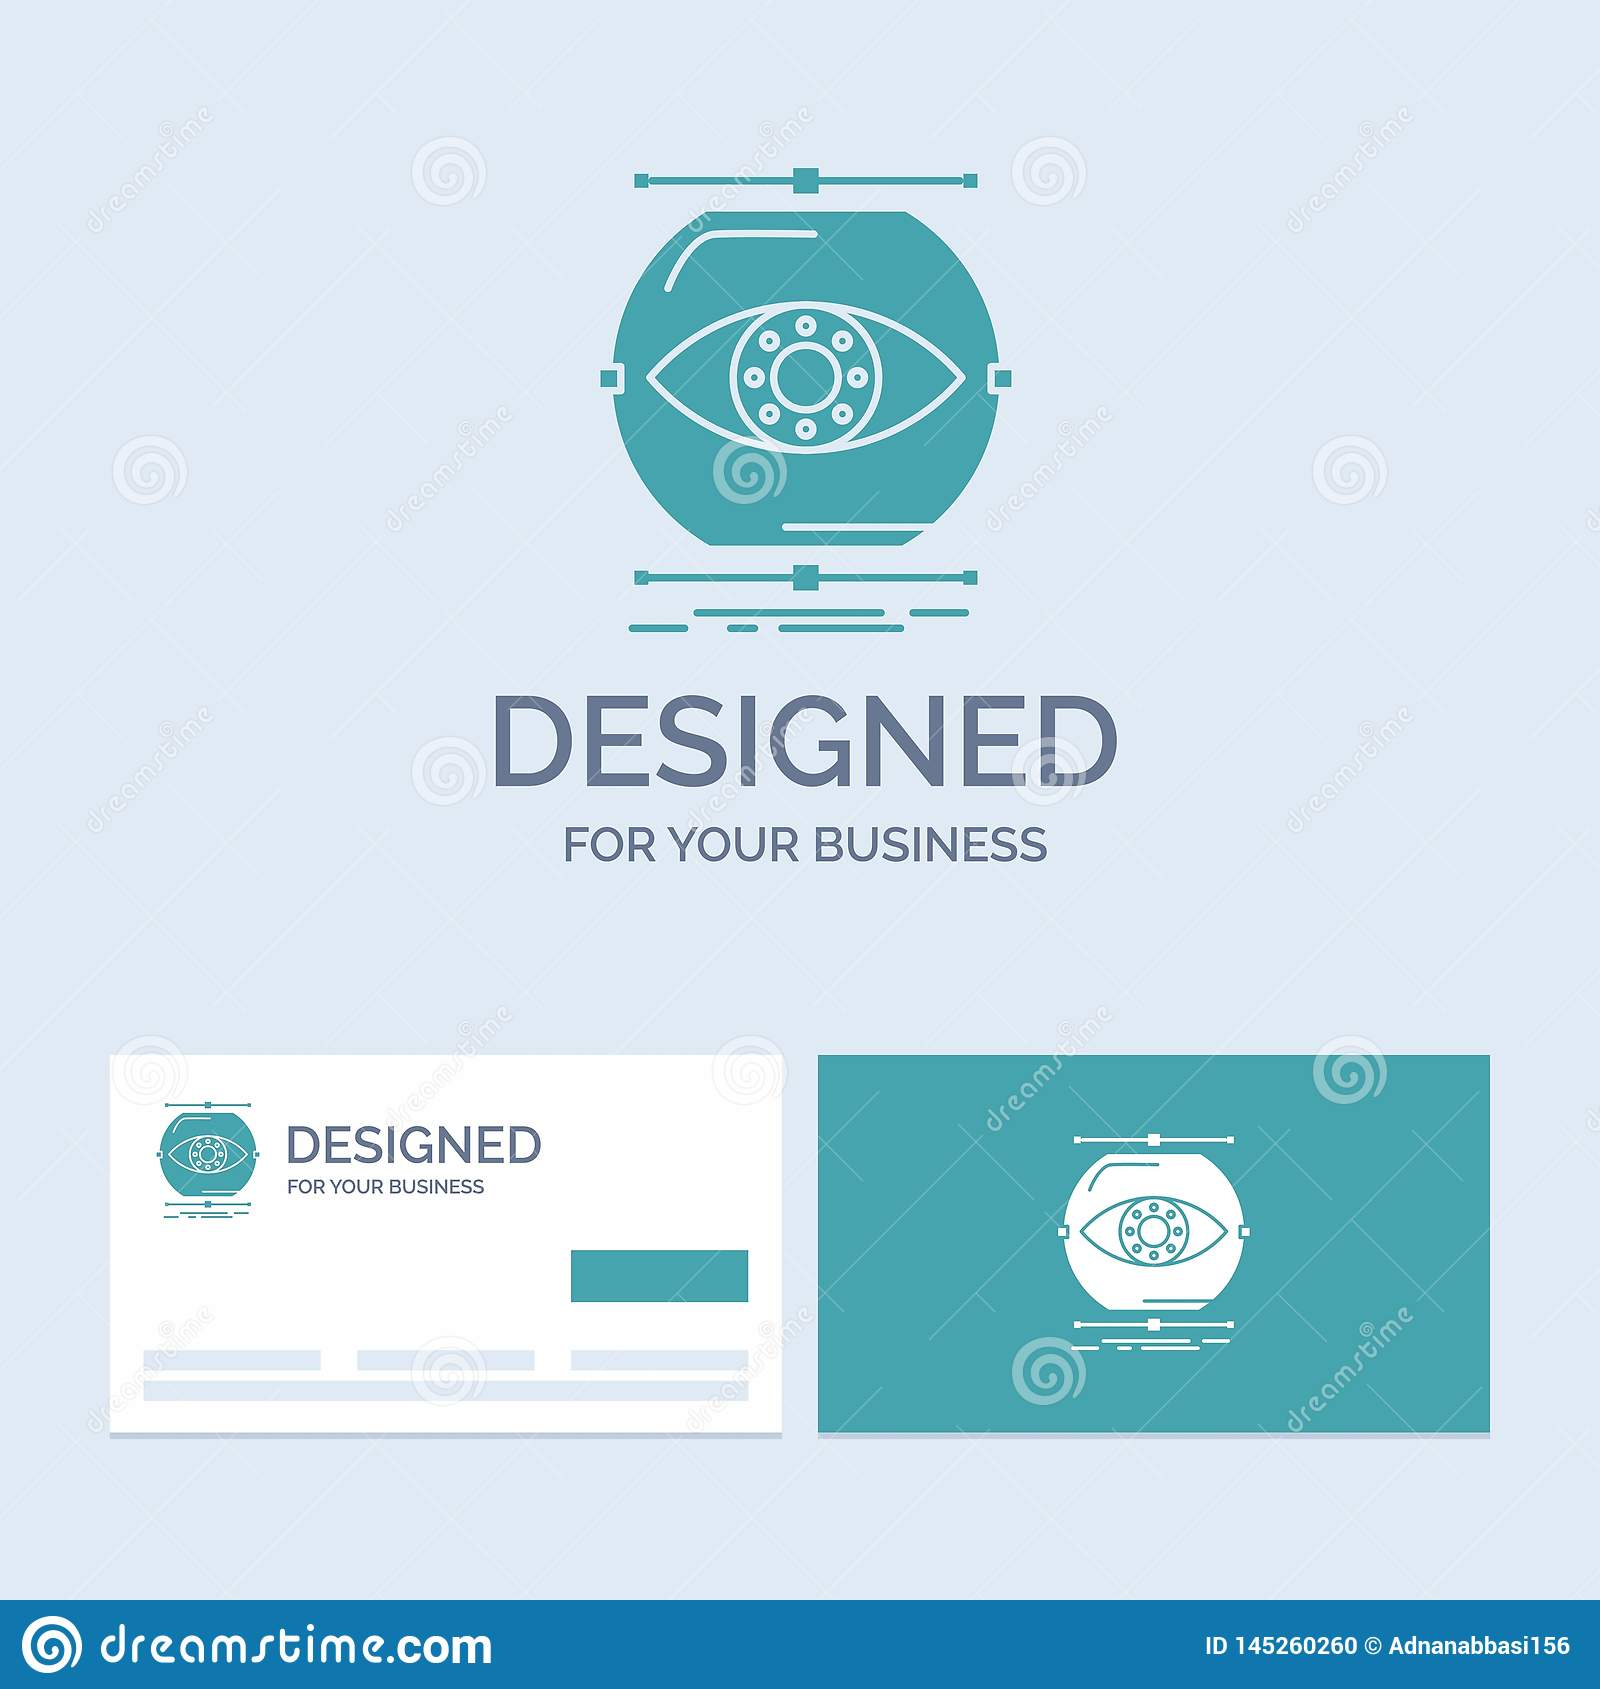 visualize, conception, monitoring, monitoring, vision Business Logo Glyph Icon Symbol for your business. Turquoise Business Cards